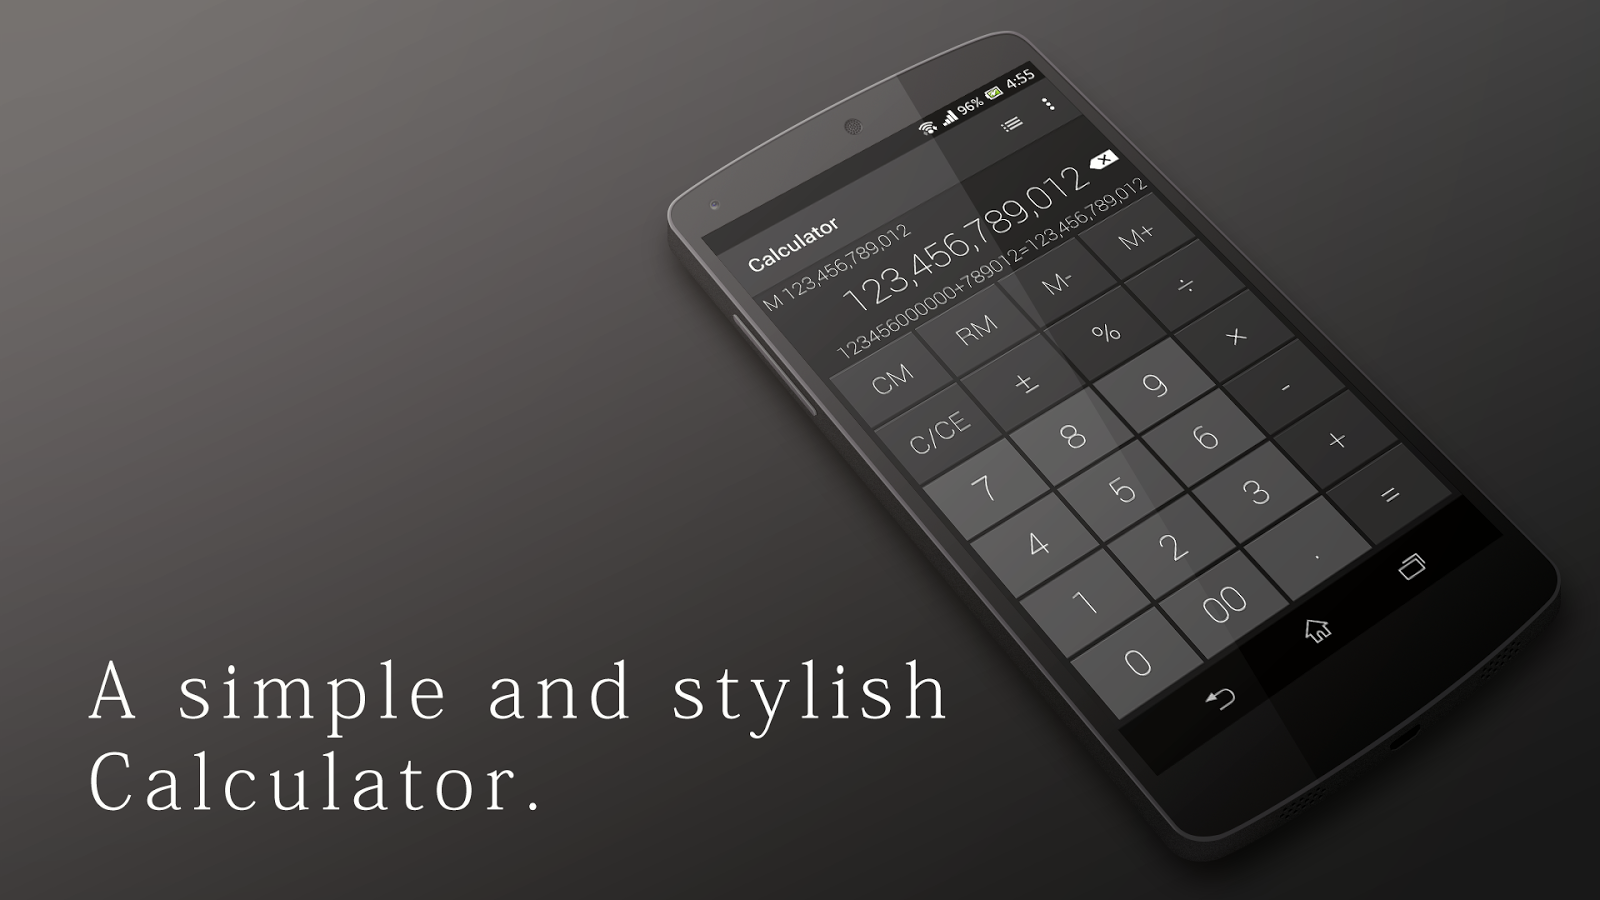 Calculator - Simple & Stylish Screenshot 8